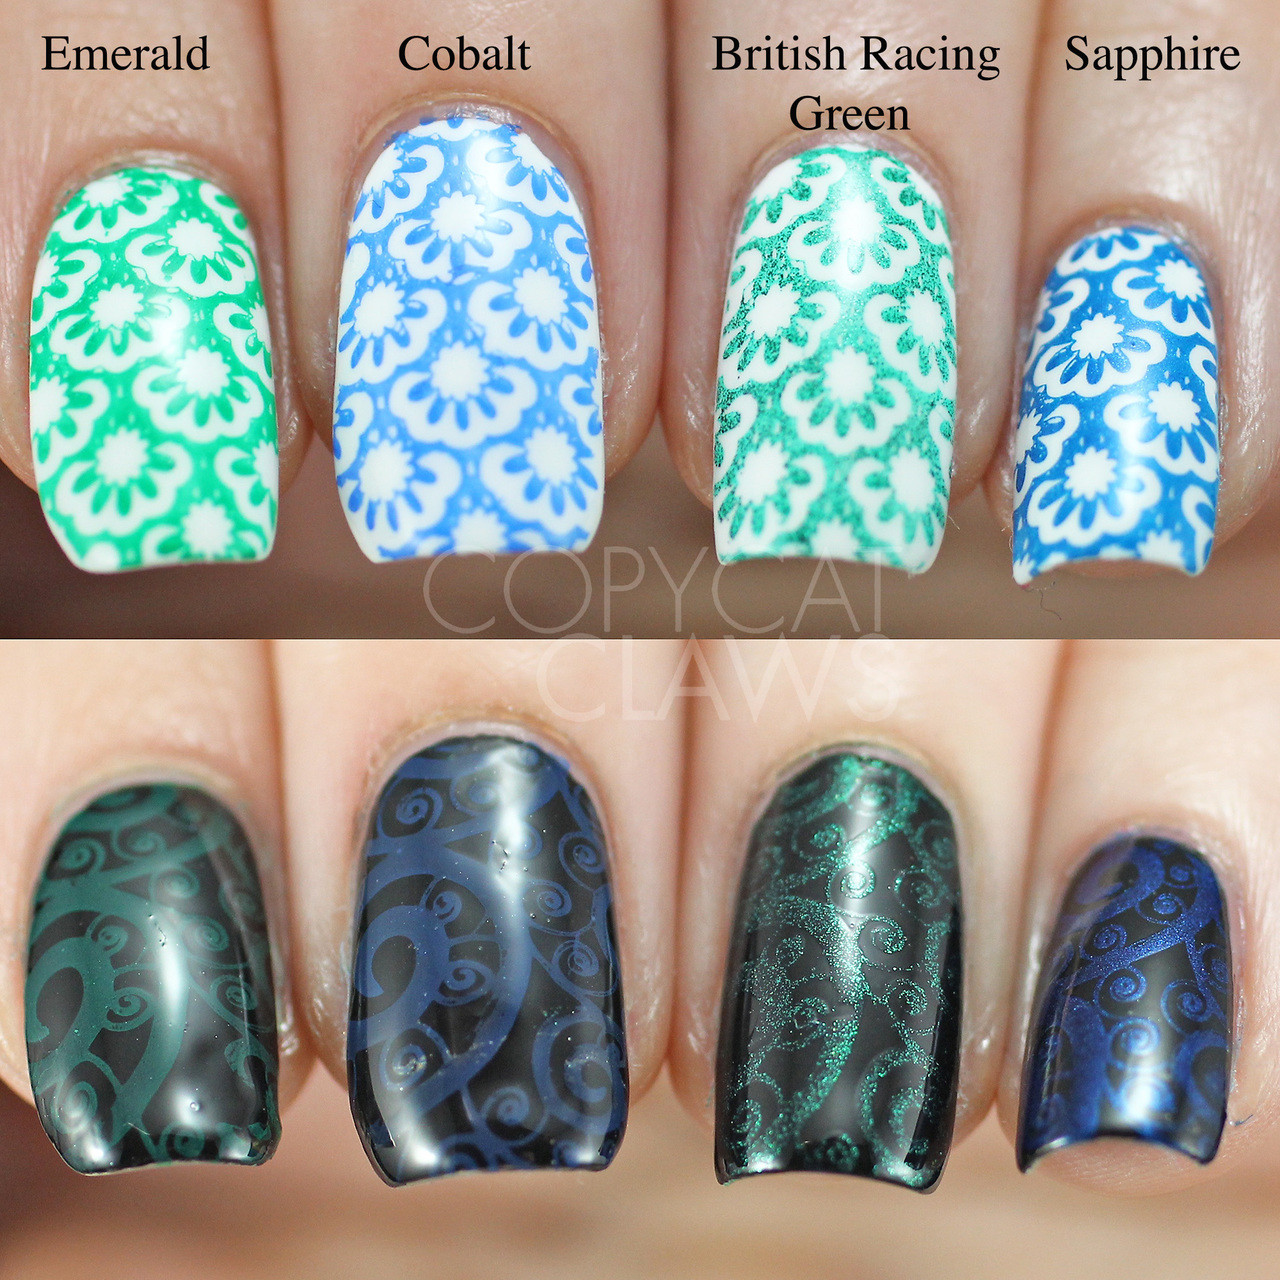 Copycat Claws Blue Color Block Nail Art: Sapphire {Stamping} By Girly Bits Cosmetics